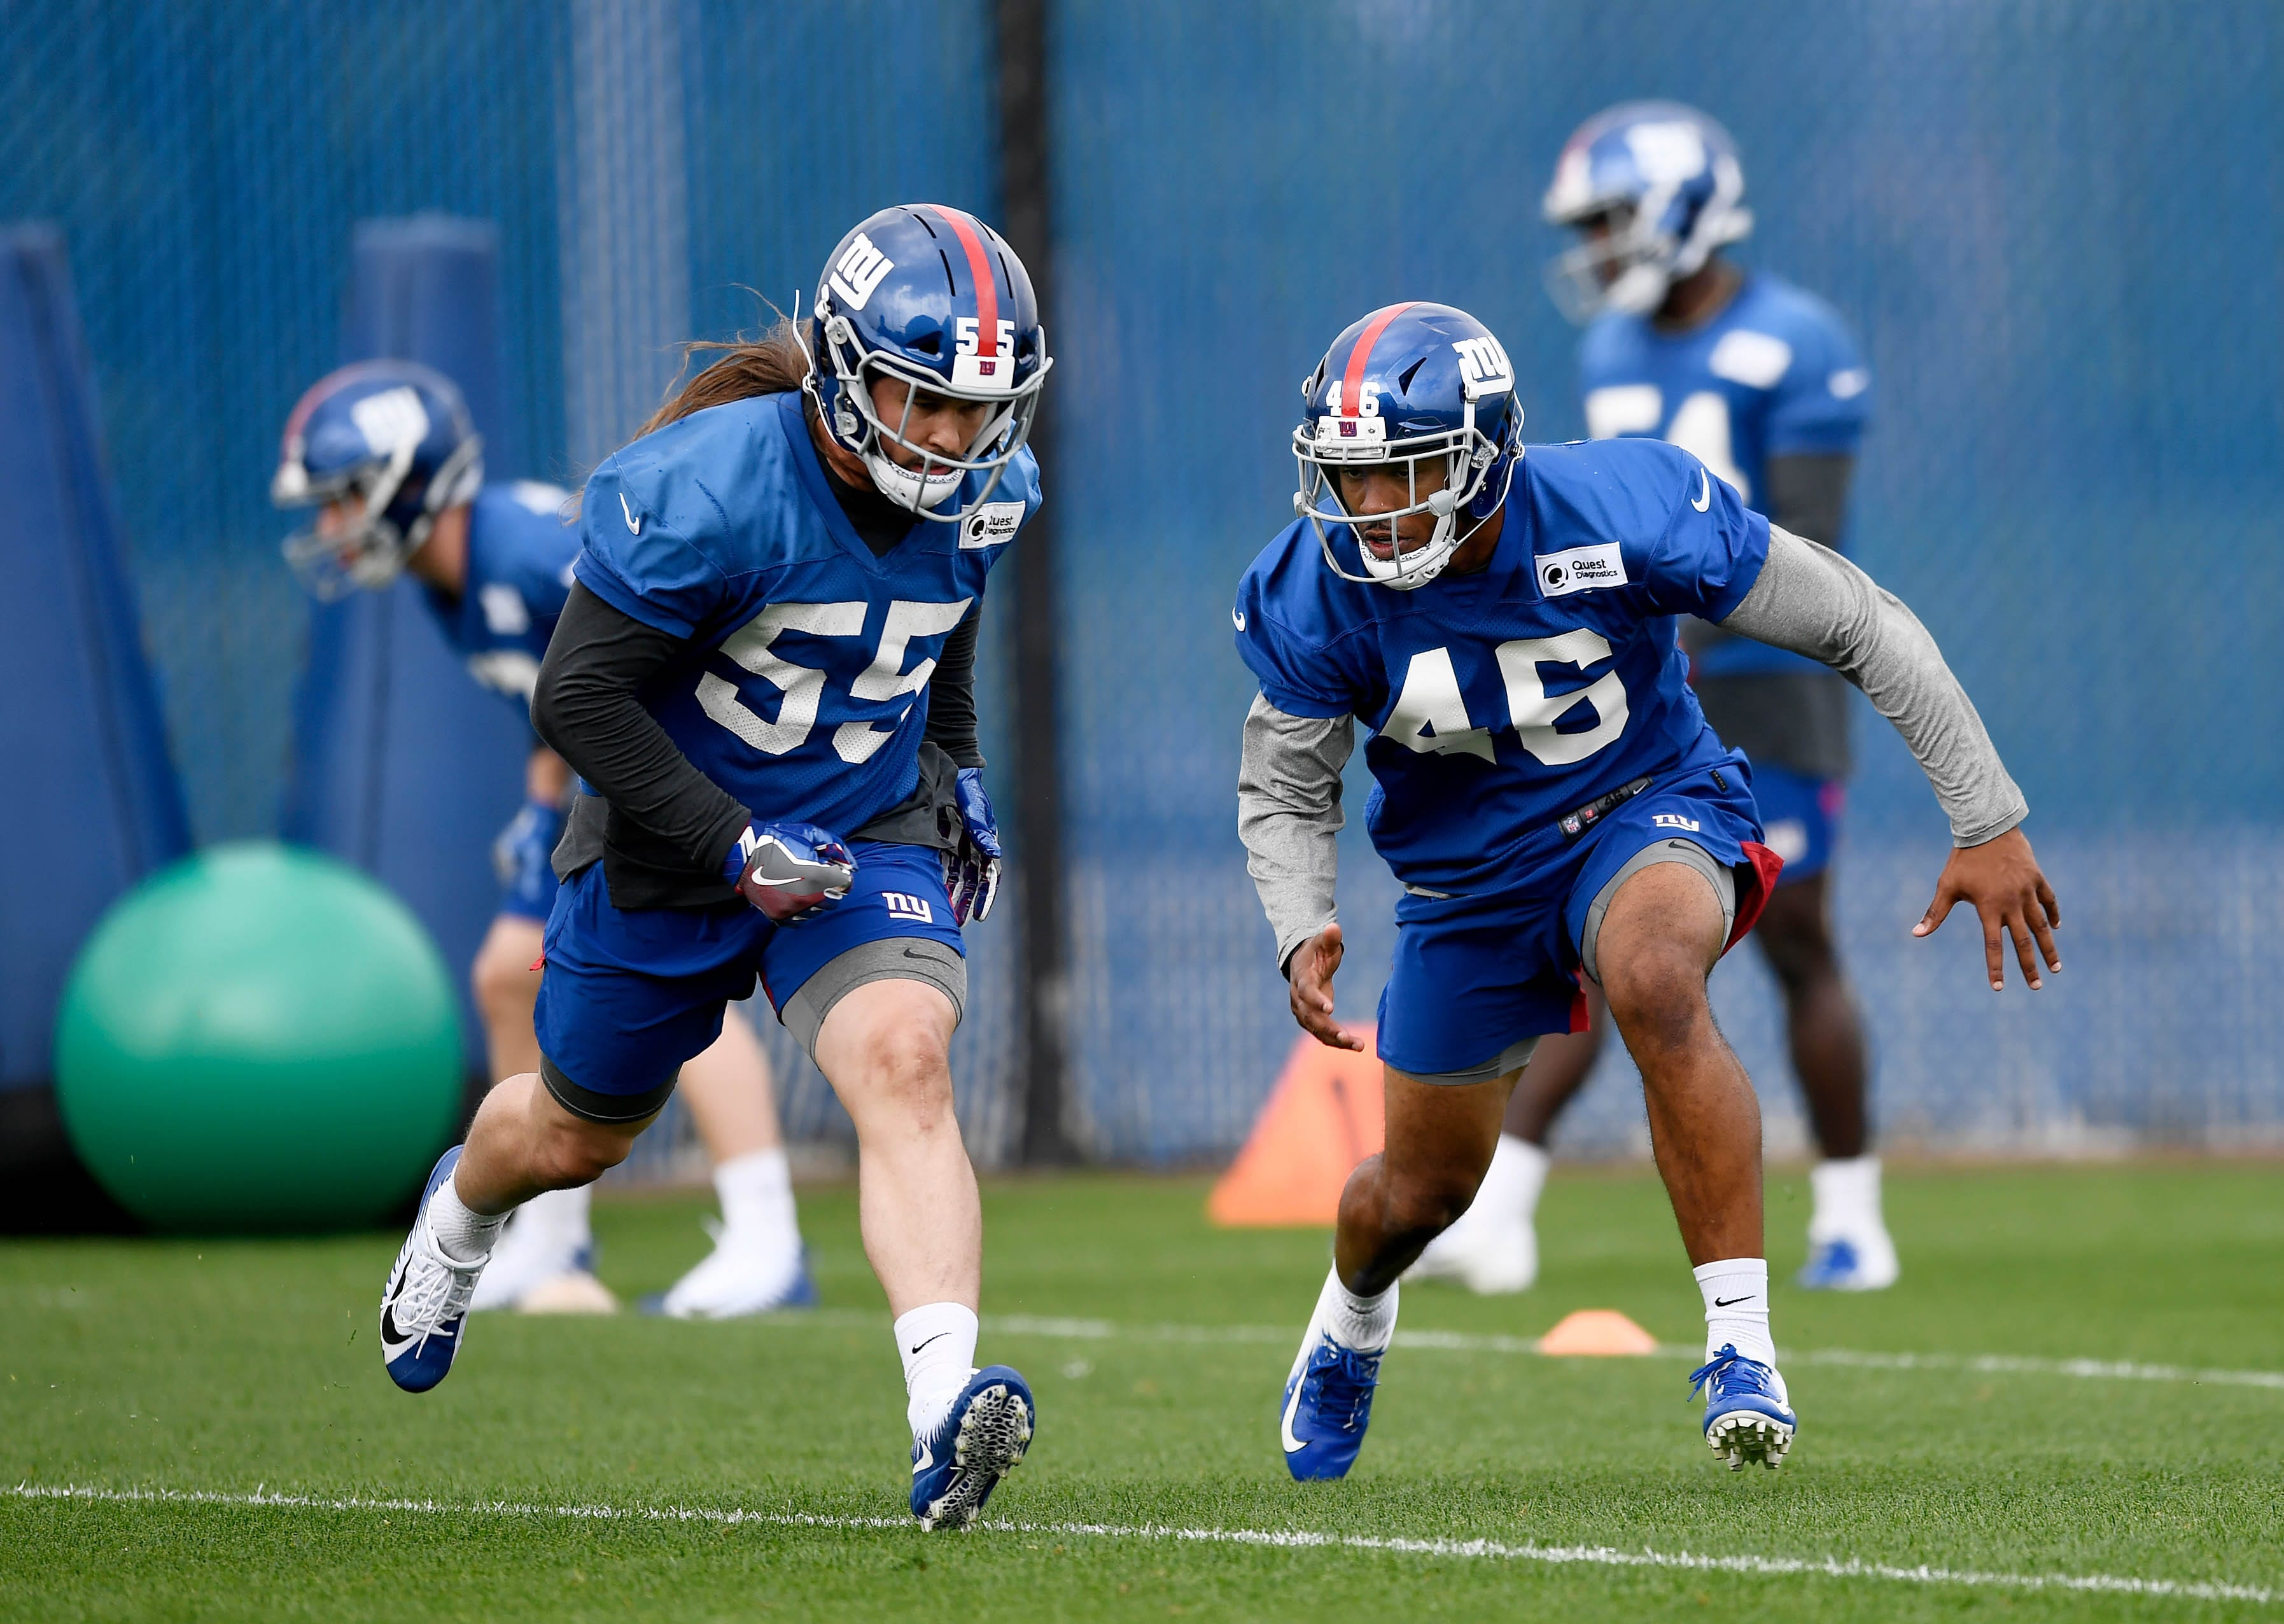 Cheap New York Giants undrafted safety Mark McLaurin fighting for roster spot  hot sale